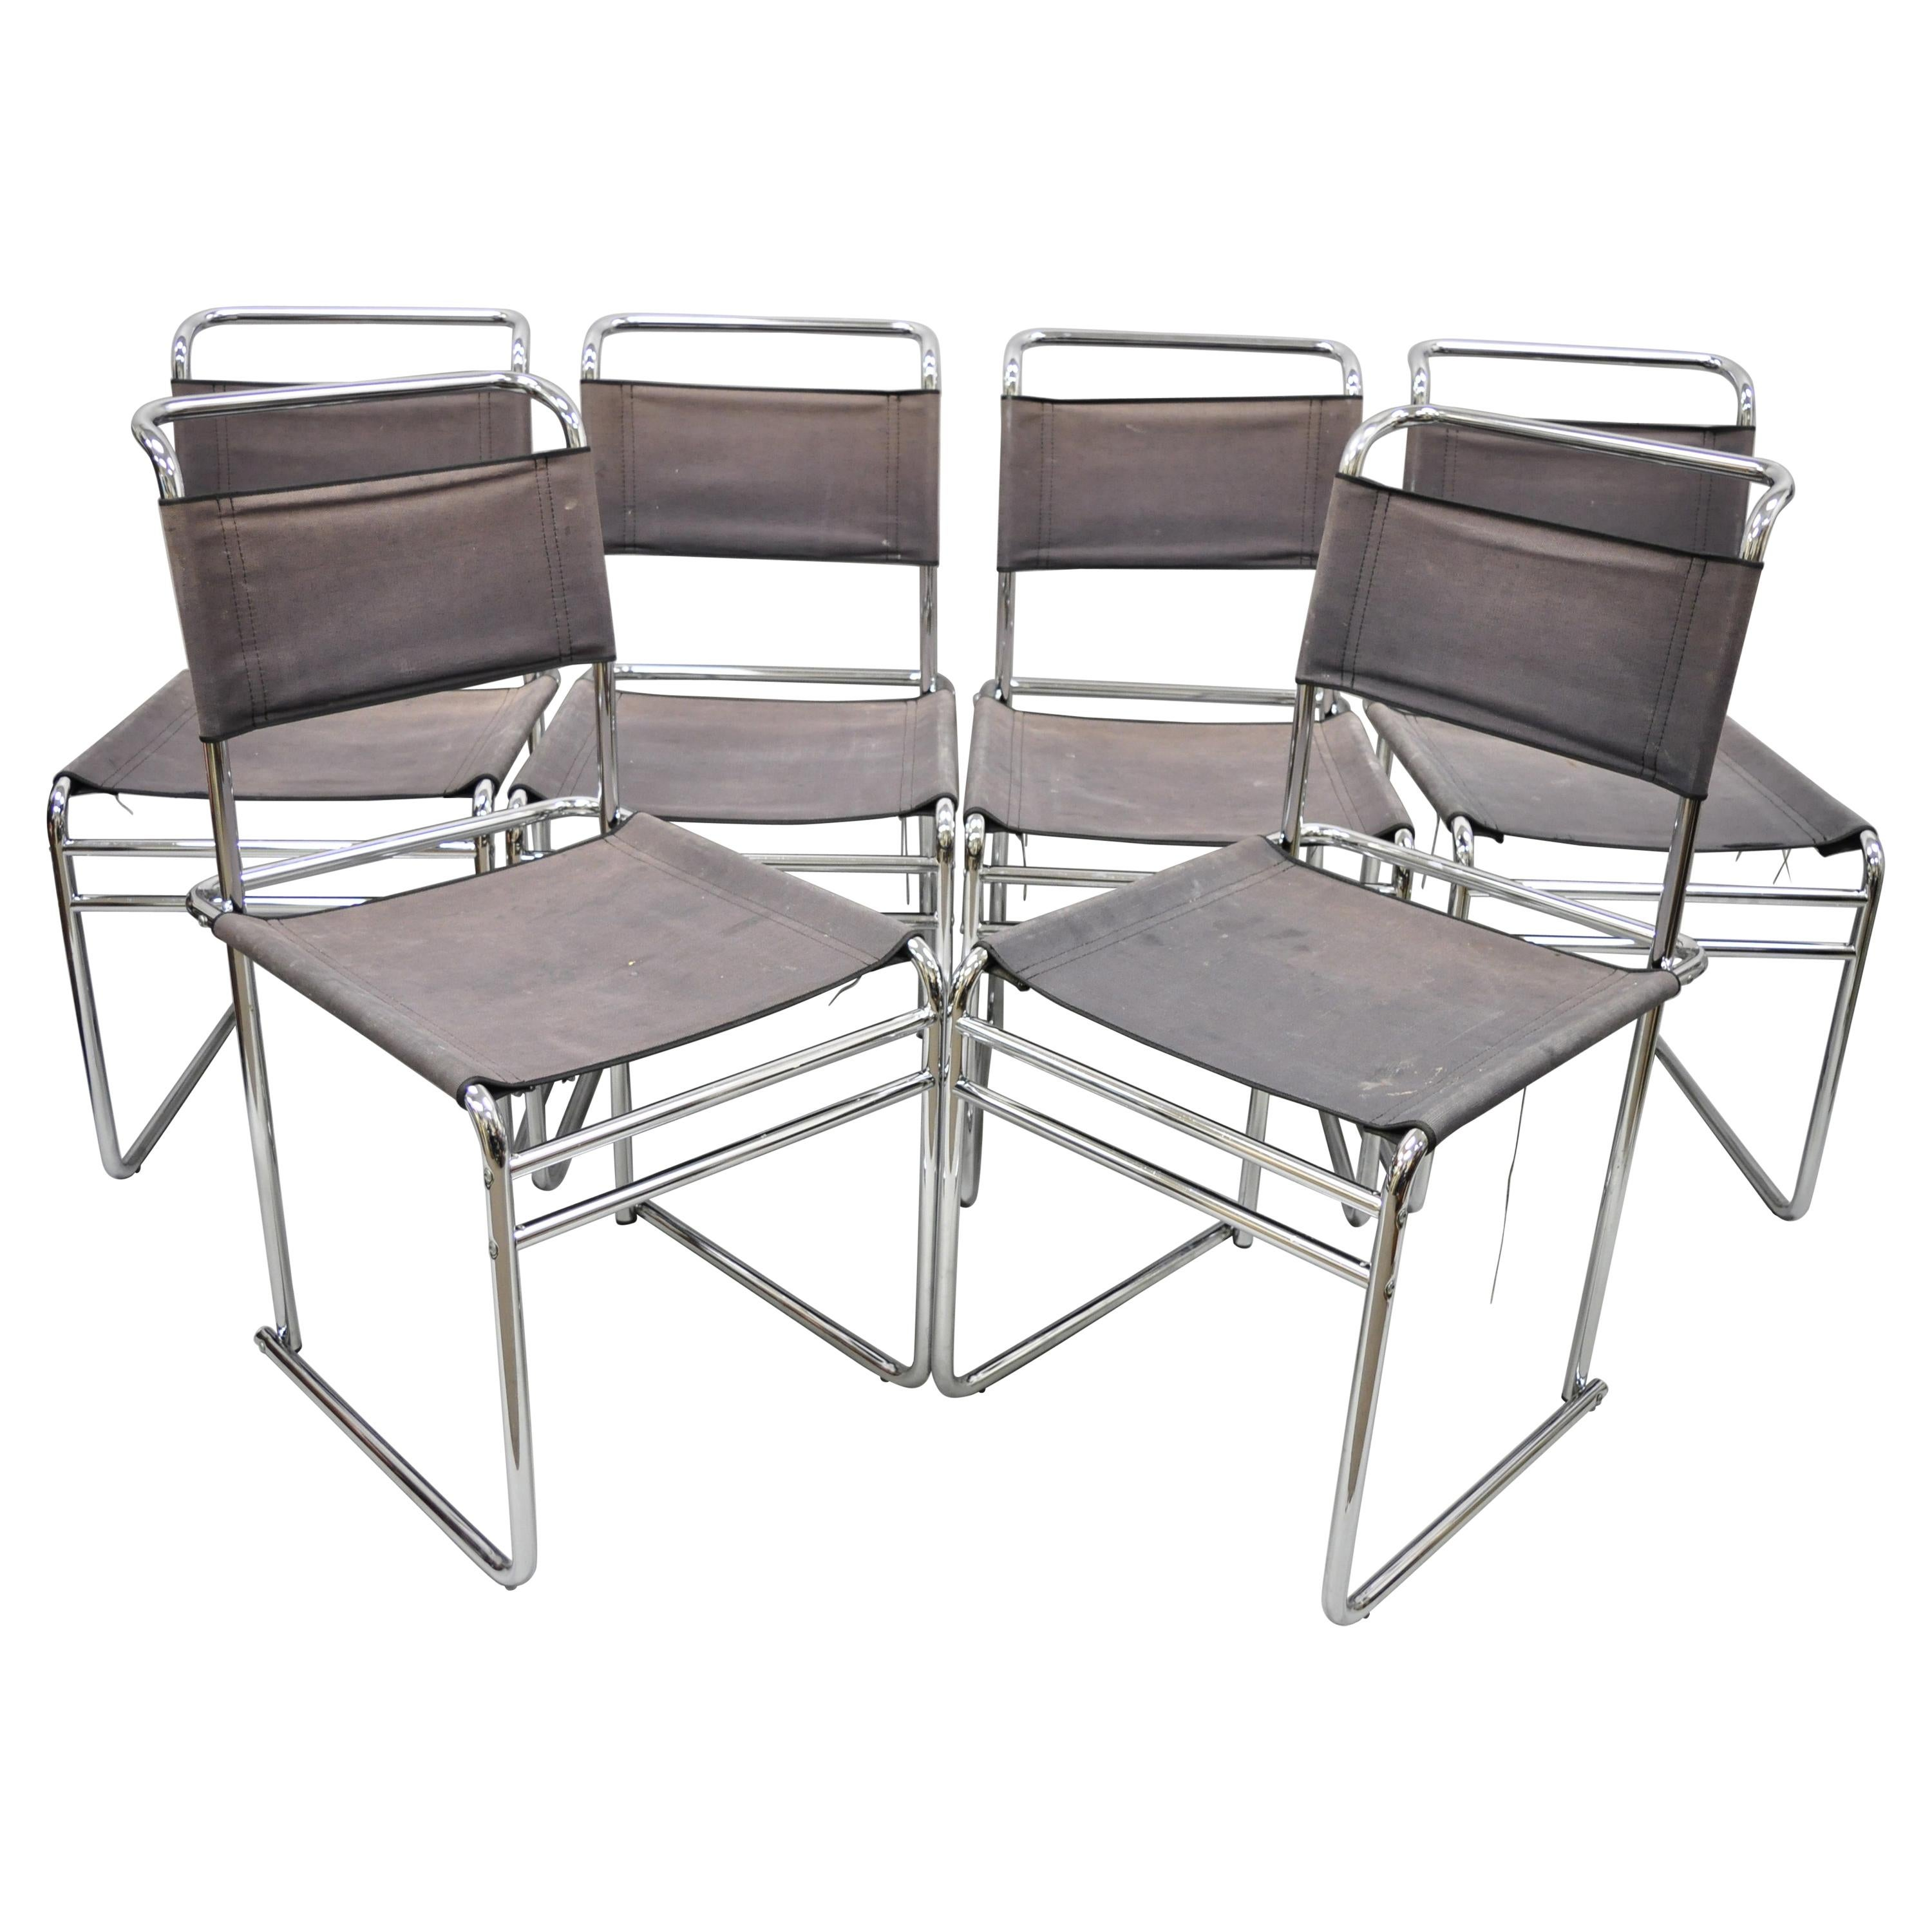 Marcel Breuer B5 Dining Chairs Chrome and Canvas Vintage Bauhaus, Set of 6